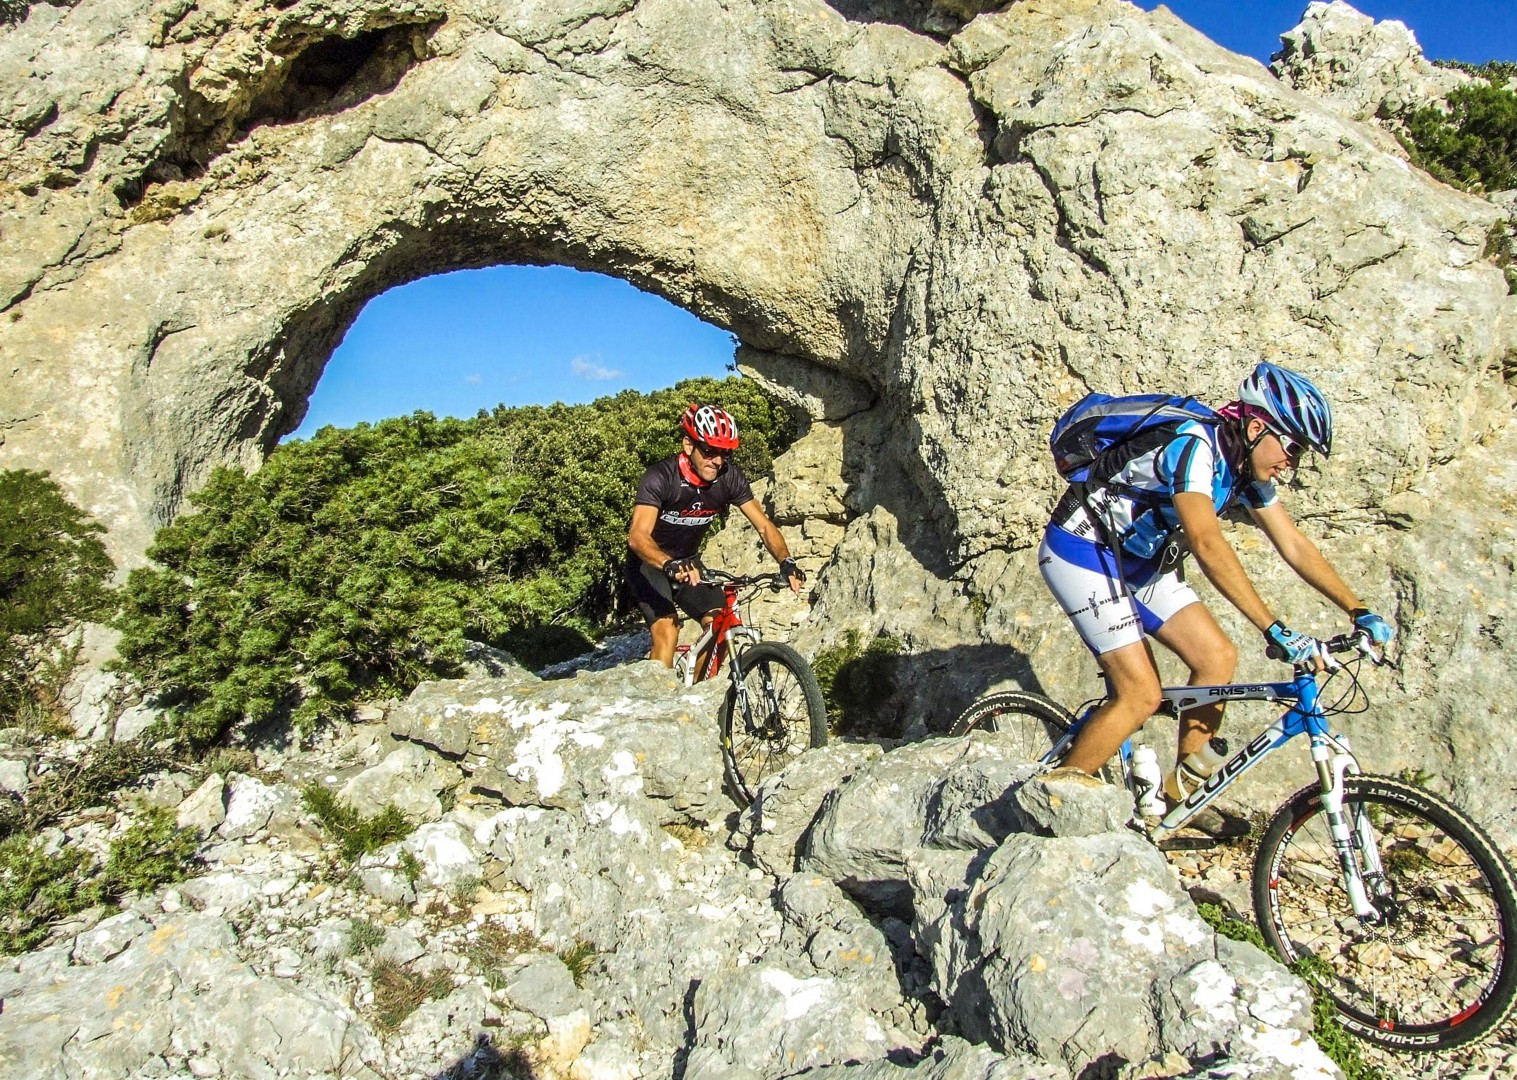 mountain-biking-tour-thrilling-remote-mountain-ranges-incredible.jpg - Sardinia - Coast to Coast - Mountain Biking